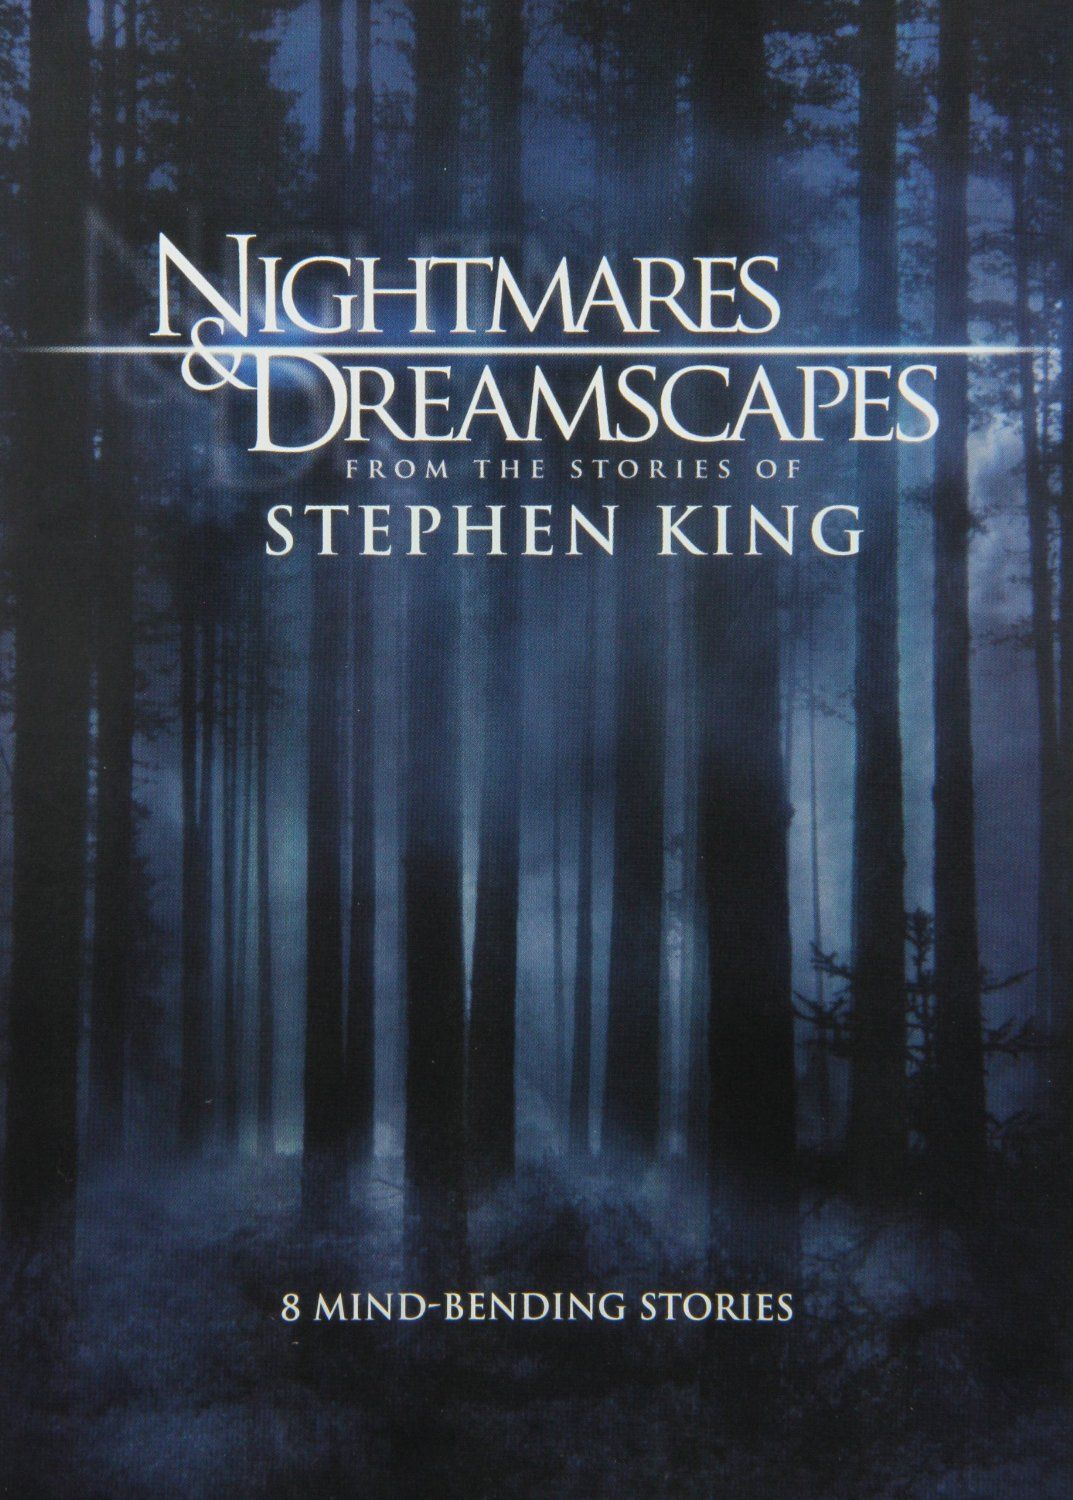 Nightmares dreamscapes from the stories of stephen